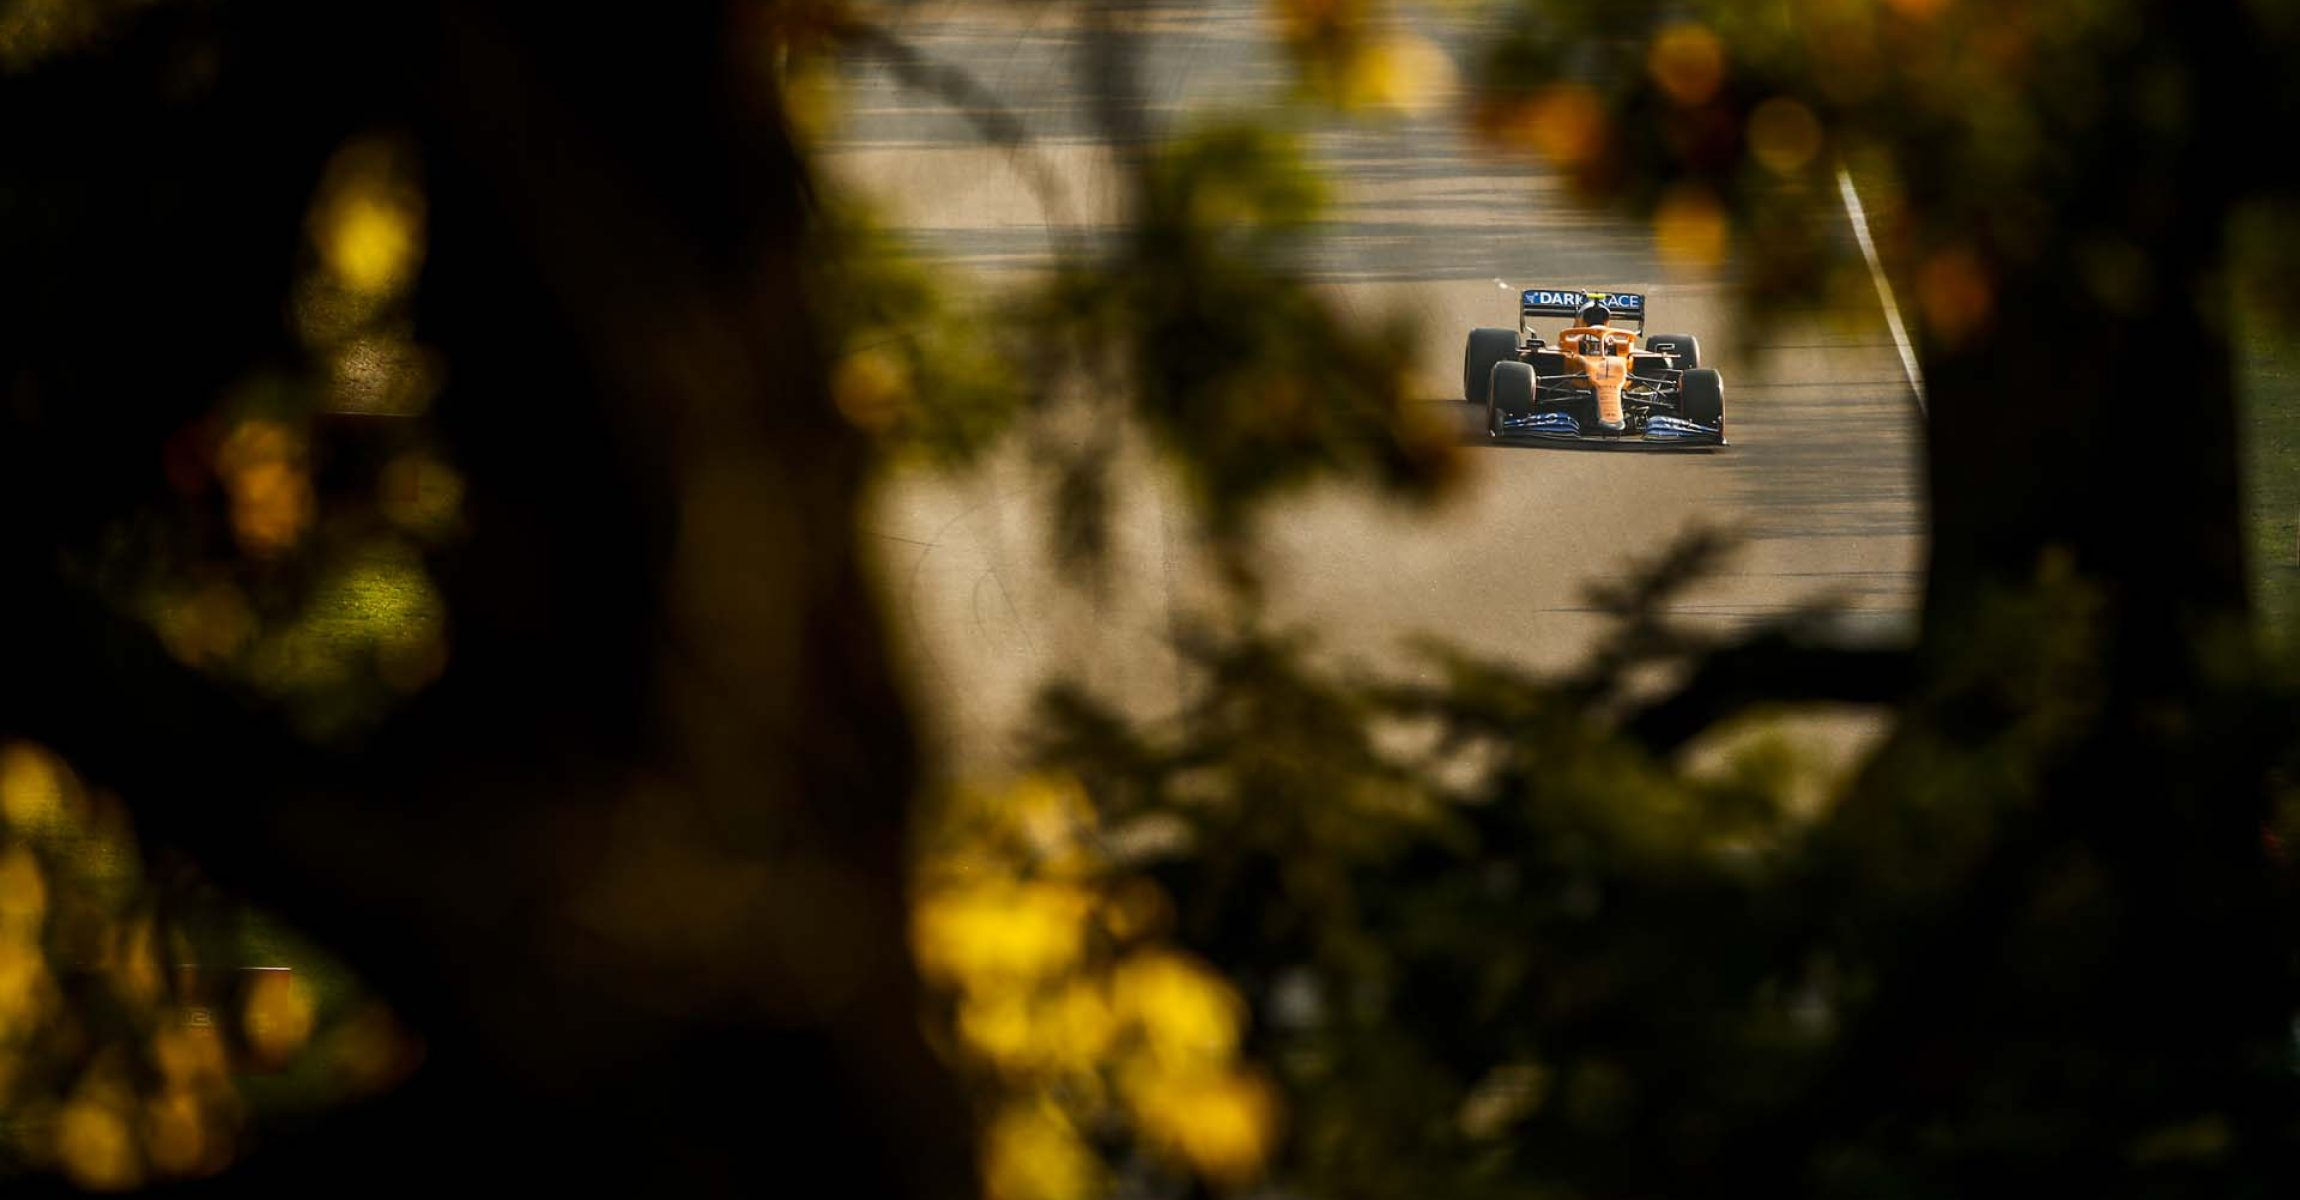 Lando Norris, McLaren MCL35, on a straight, in a scenic shot of Imola